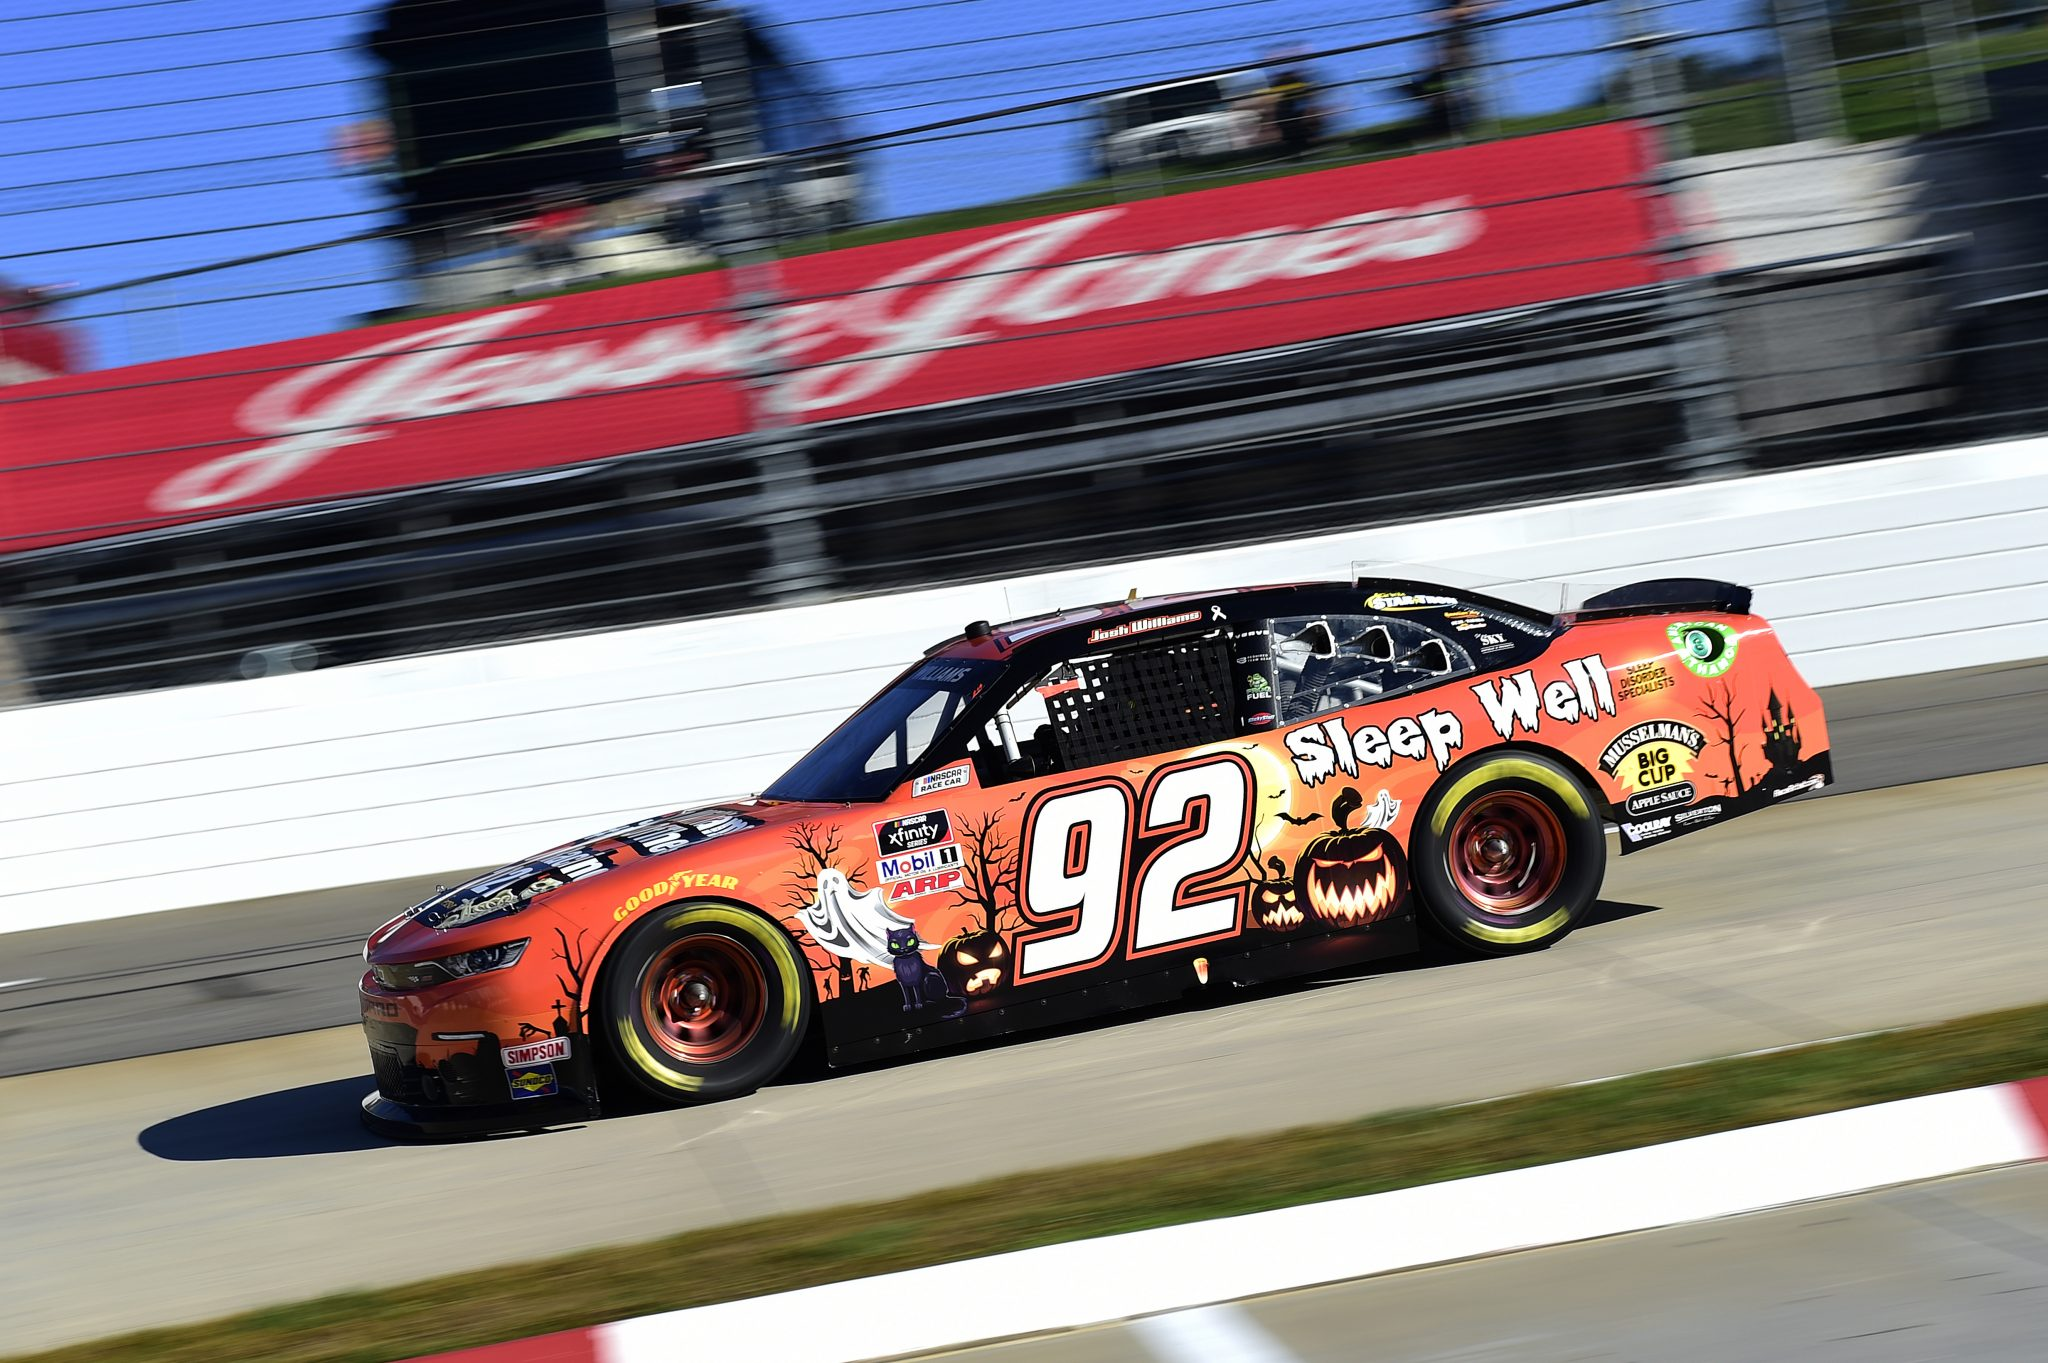 MARTINSVILLE, VIRGINIA - OCTOBER 31: Josh Williams, driver of the #92 Sleep Well/Alloy Chevrolet, drives during the NASCAR Xfinity Series Draft Top 250 at Martinsville Speedway on October 31, 2020 in Martinsville, Virginia. (Photo by Jared C. Tilton/Getty Images) | Getty Images